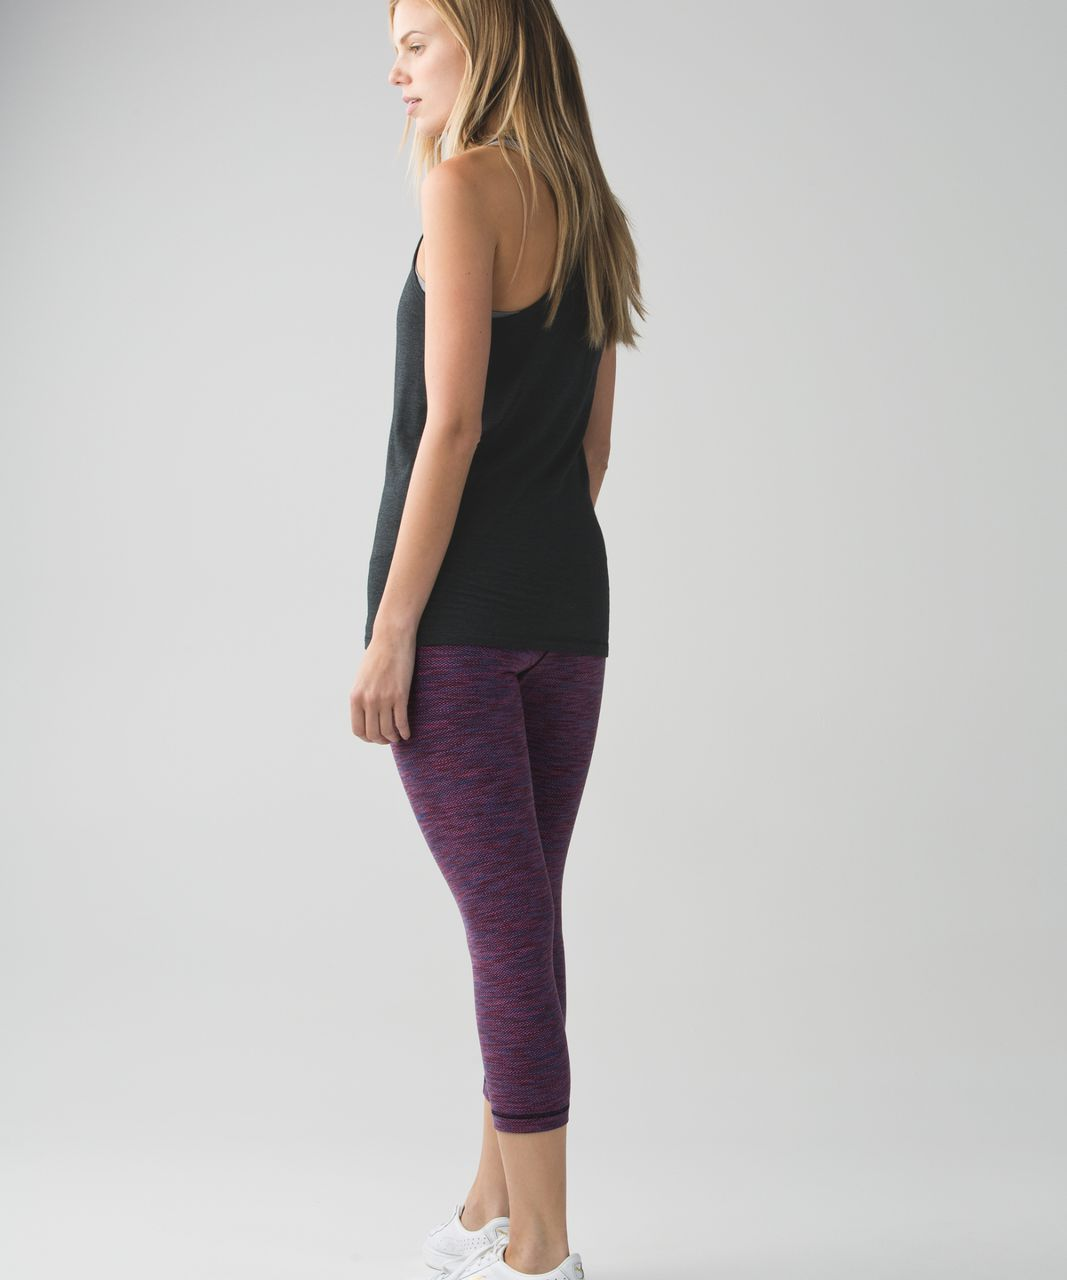 Lululemon Wunder Under Crop II (Roll Down) - Diamond Jacquard Space Dye Naval Blue Jewelled Magenta